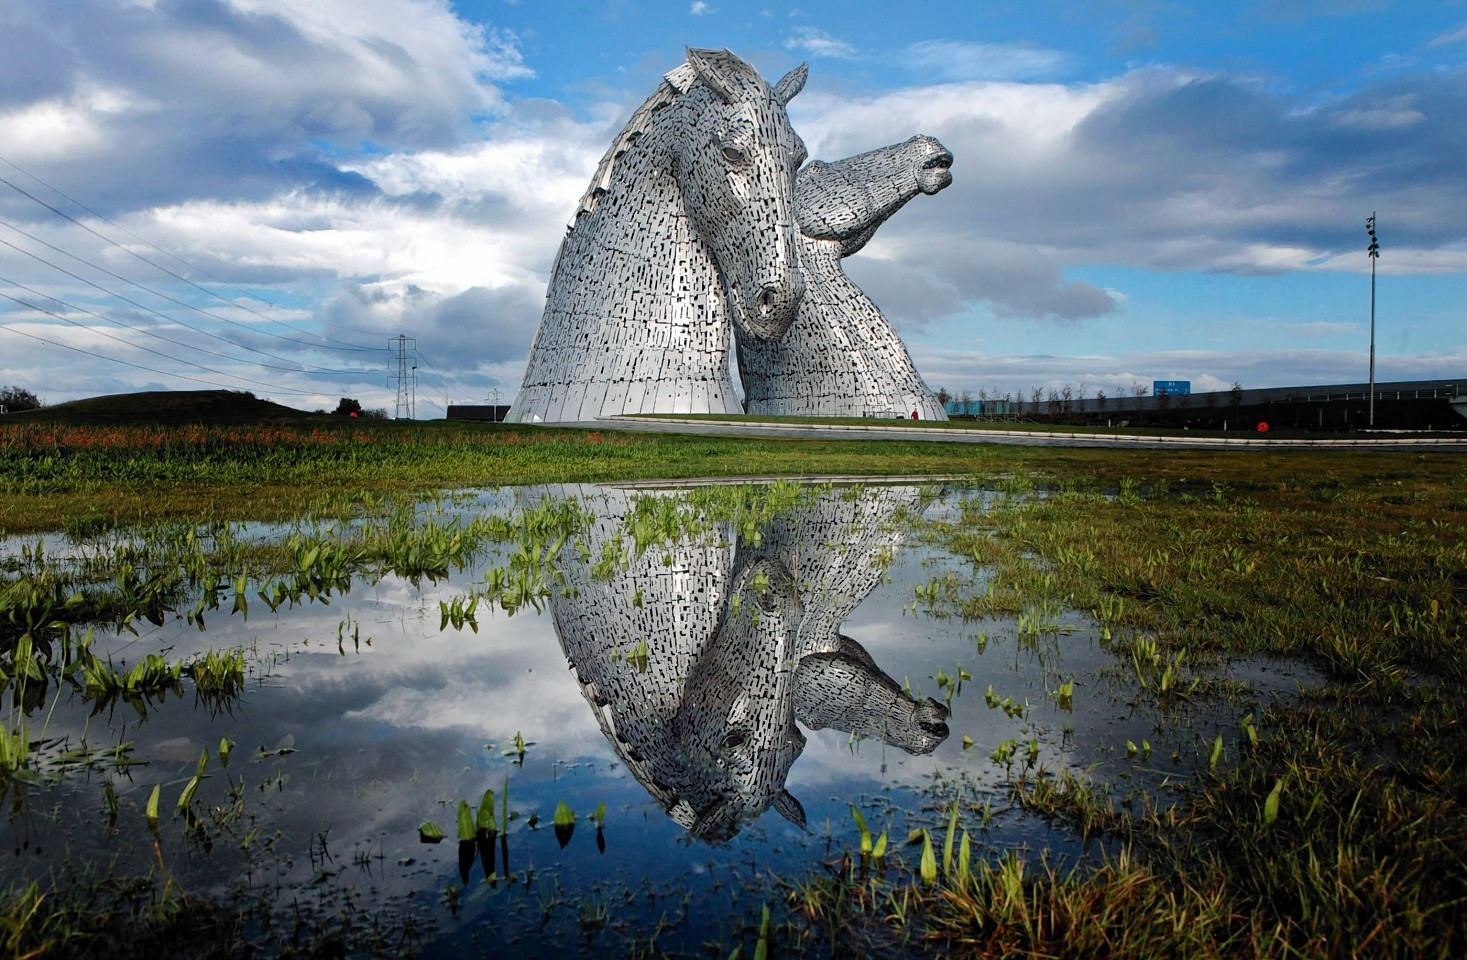 The Kelpies were unveiled to the public last year